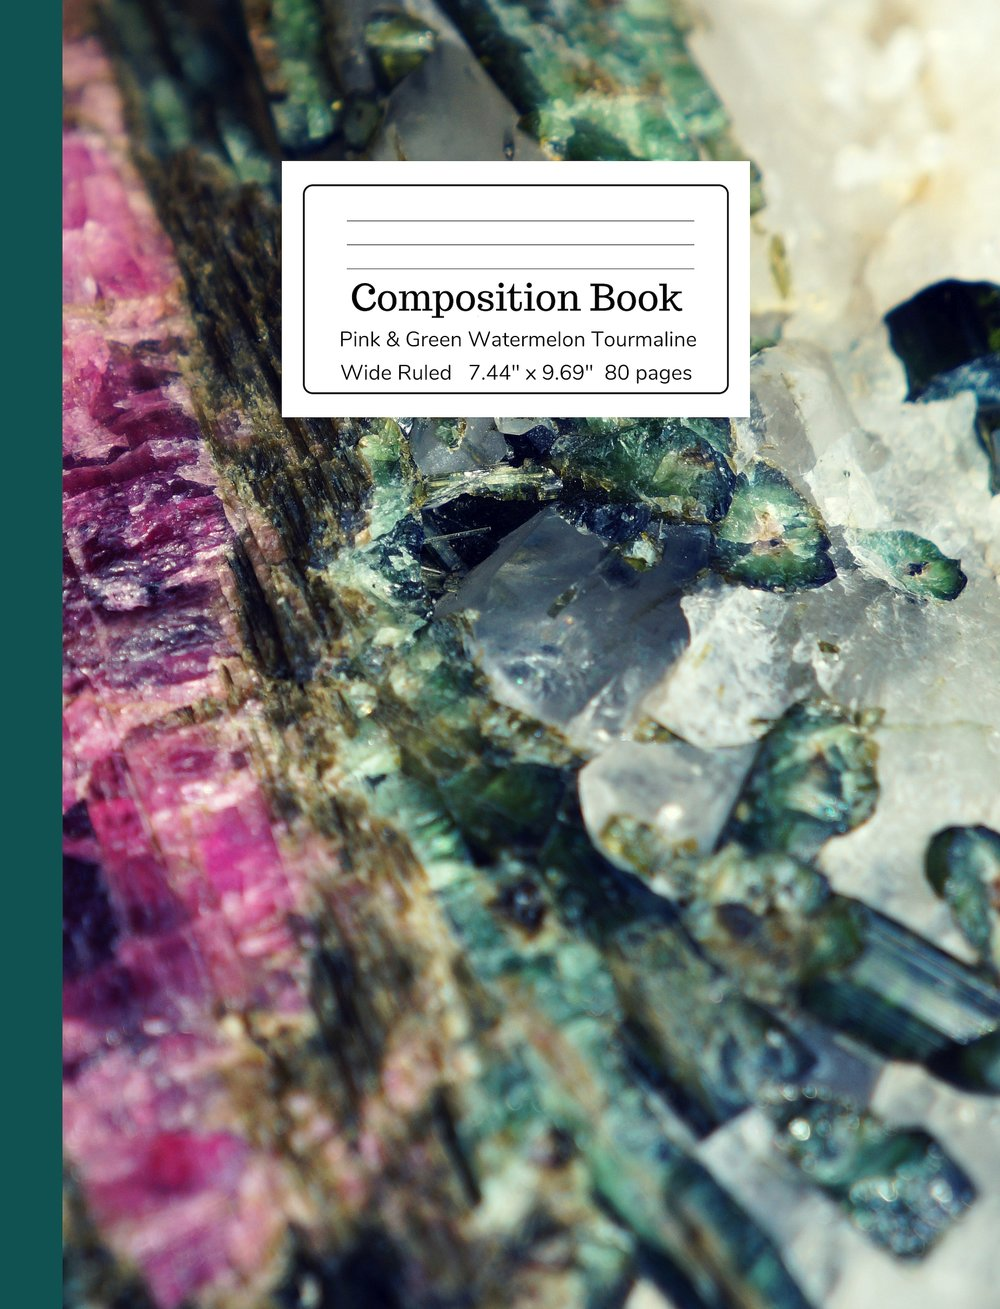 Pink & Green Watermelon Tourmaline Composition Book